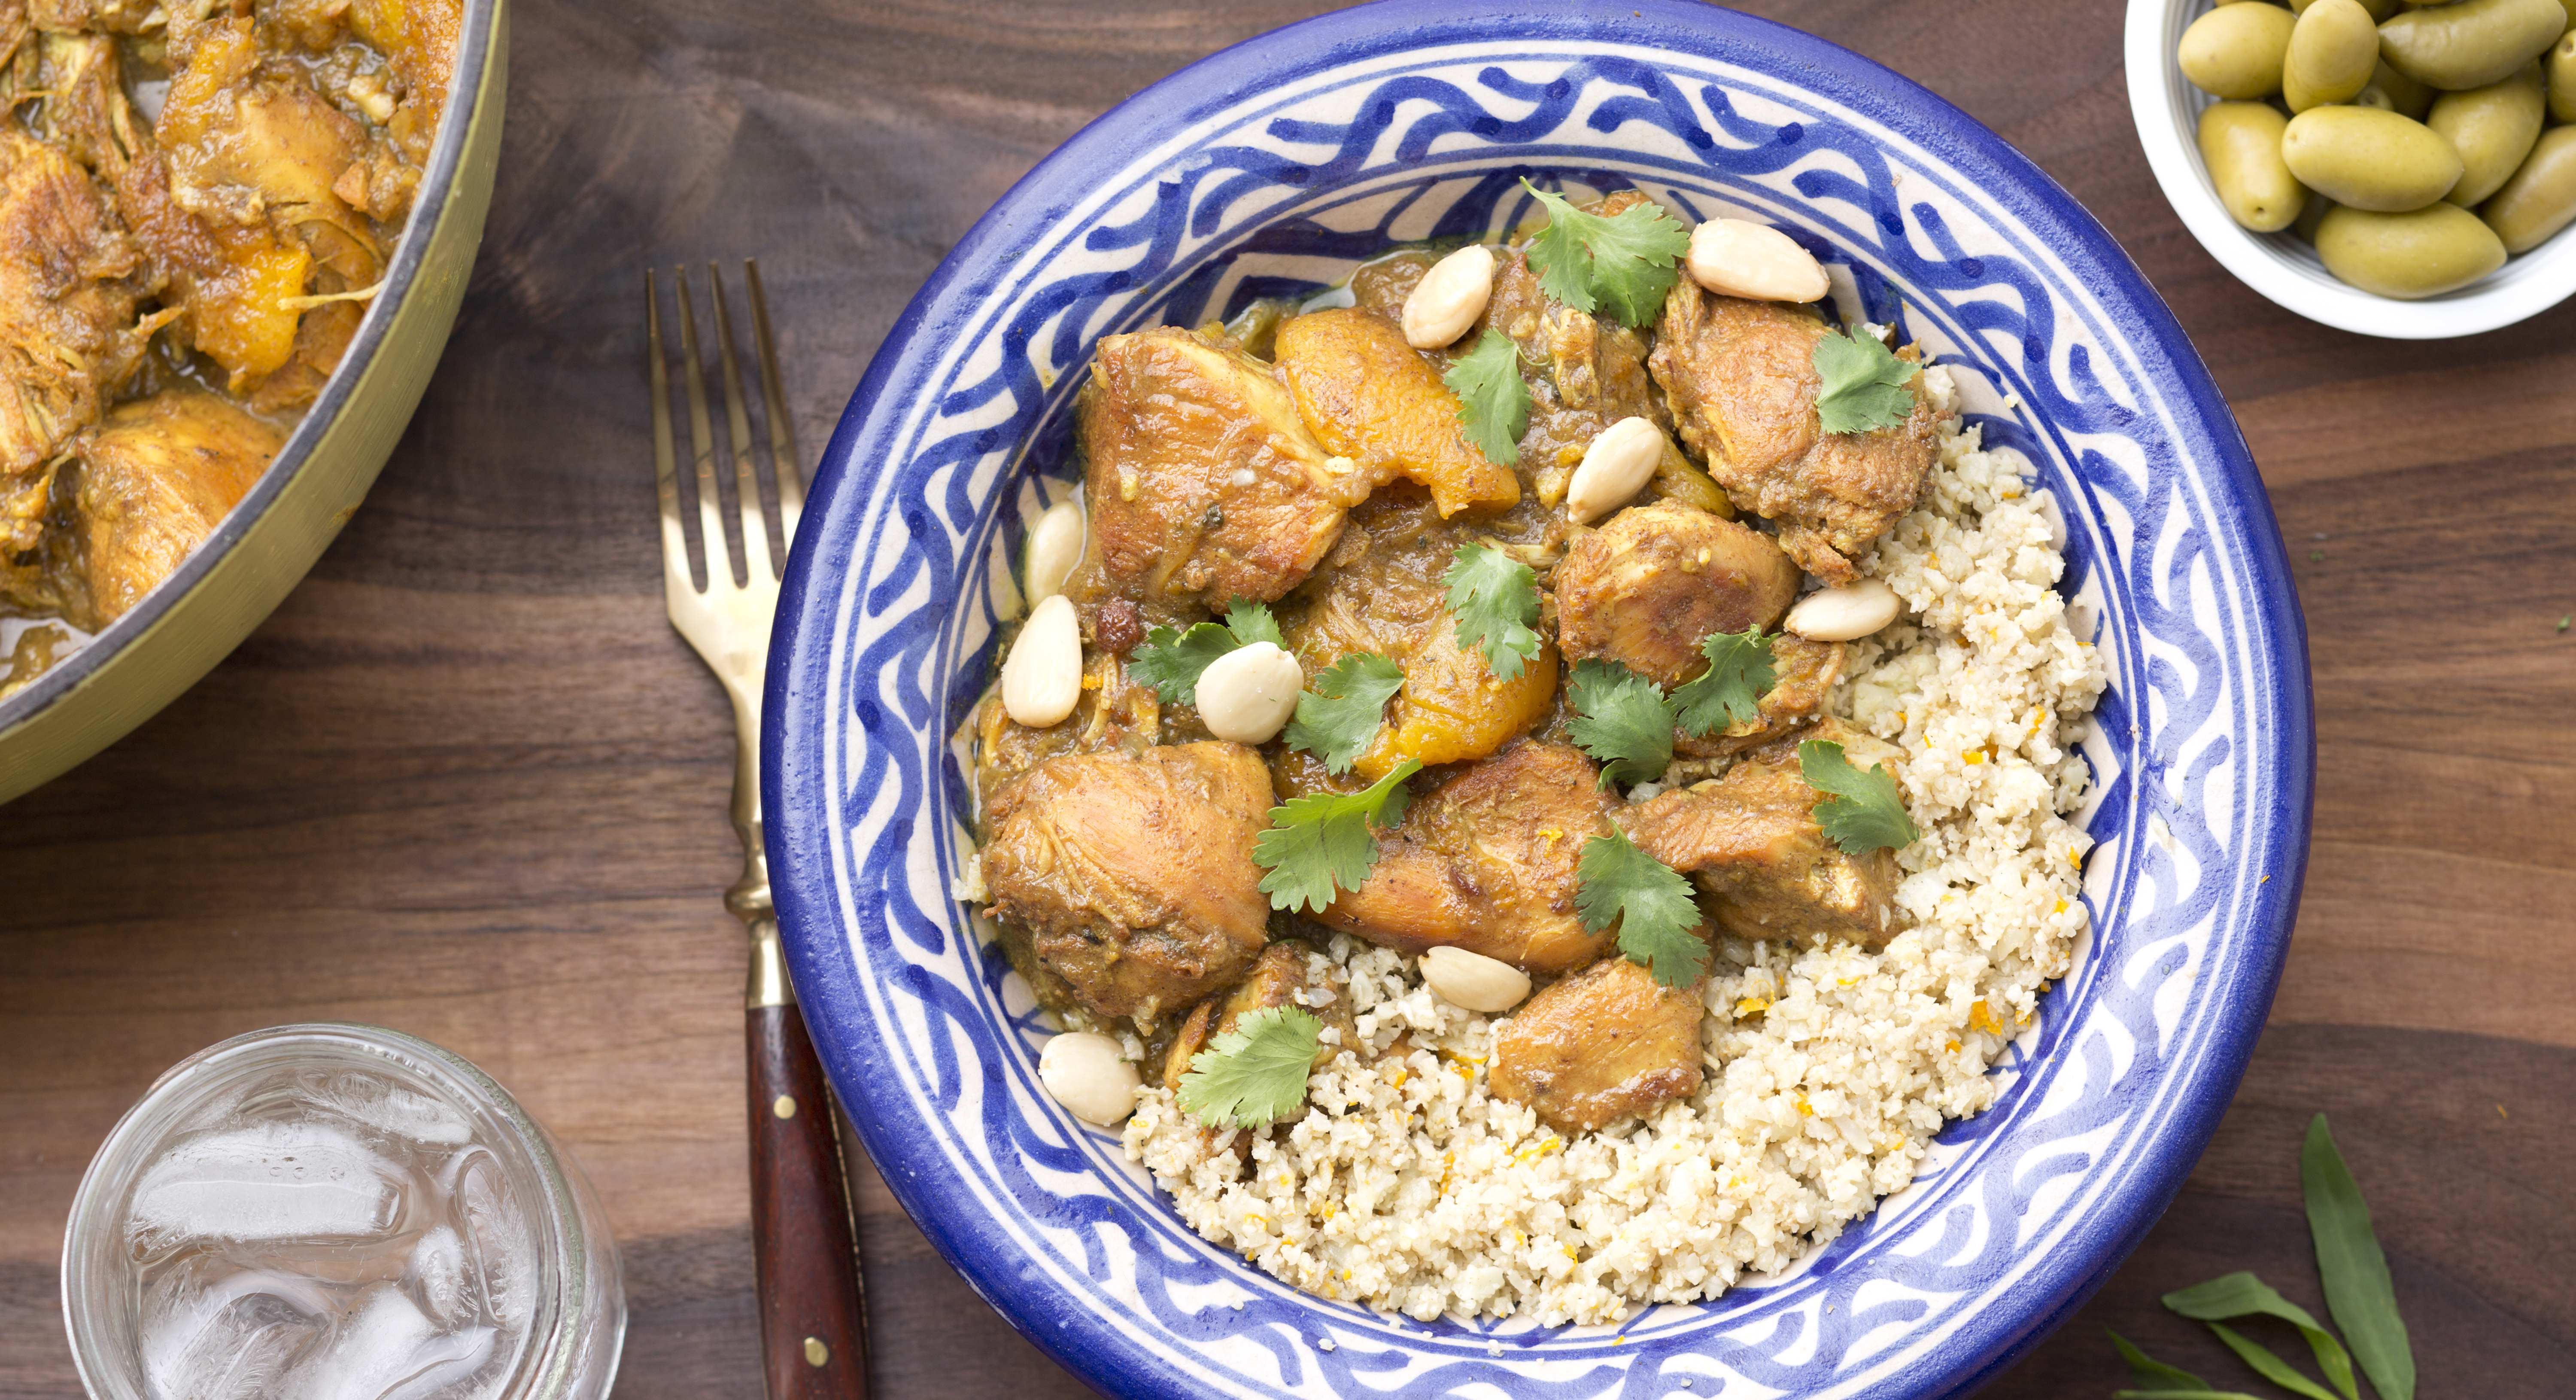 Apricot Almond Chicken Tagine with Cauliflower Couscous